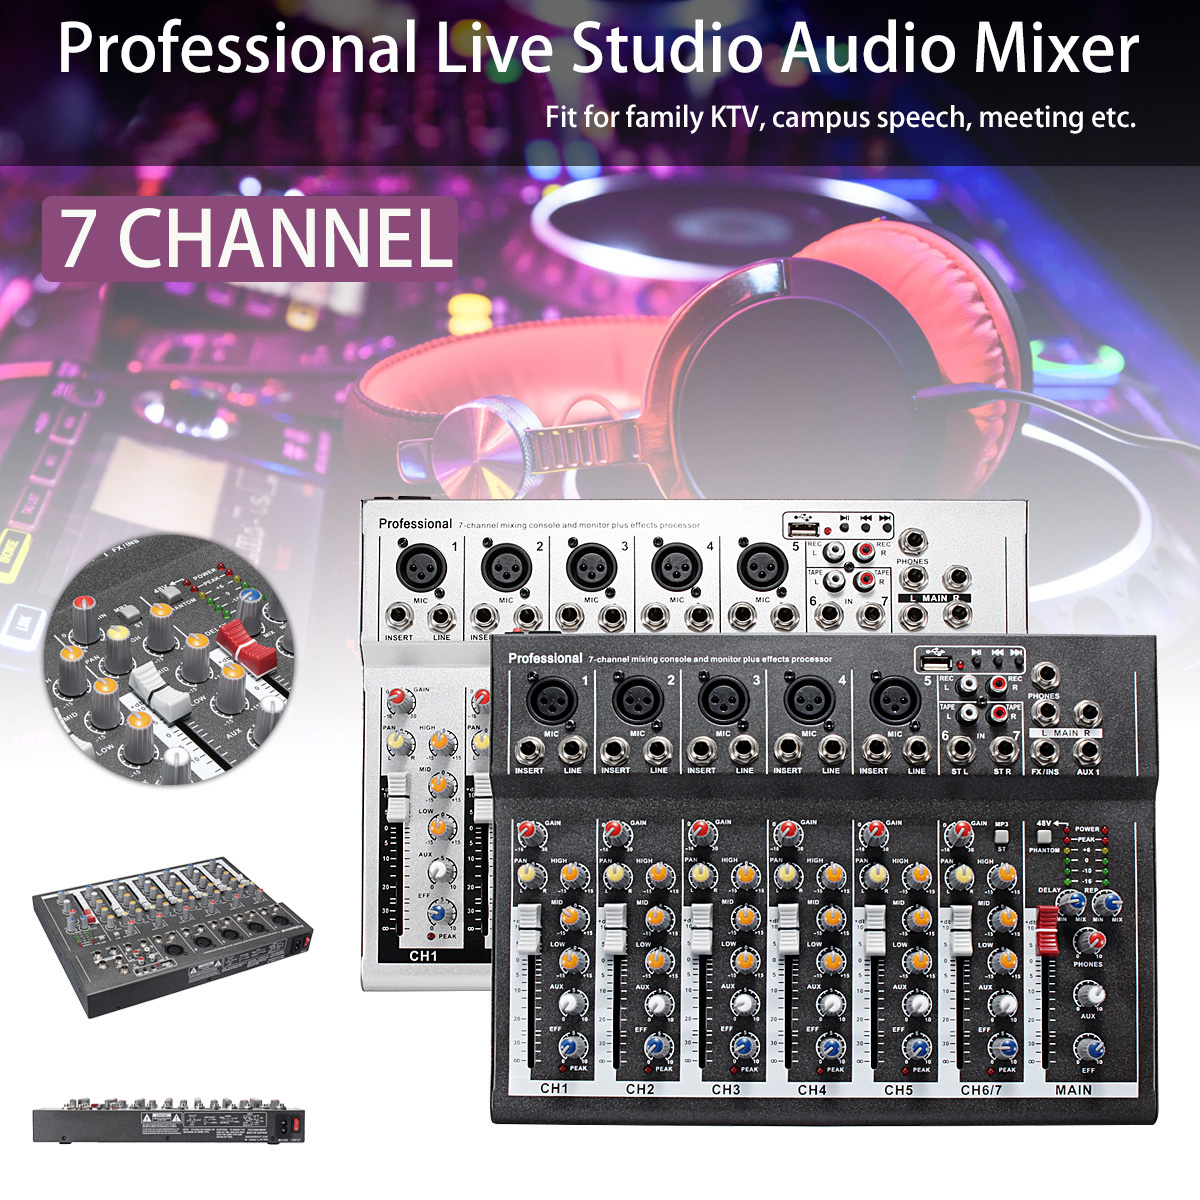 Mini Portable 7 Channel Karaoke Audio Mixer Amplifier Digital Microphone Sound DJ Mixing Console for Family KTV White Black mini portable audio mixer with usb dj sound mixing console mp3 jack 4 channel karaoke 48v amplifier for karaoke ktv match party